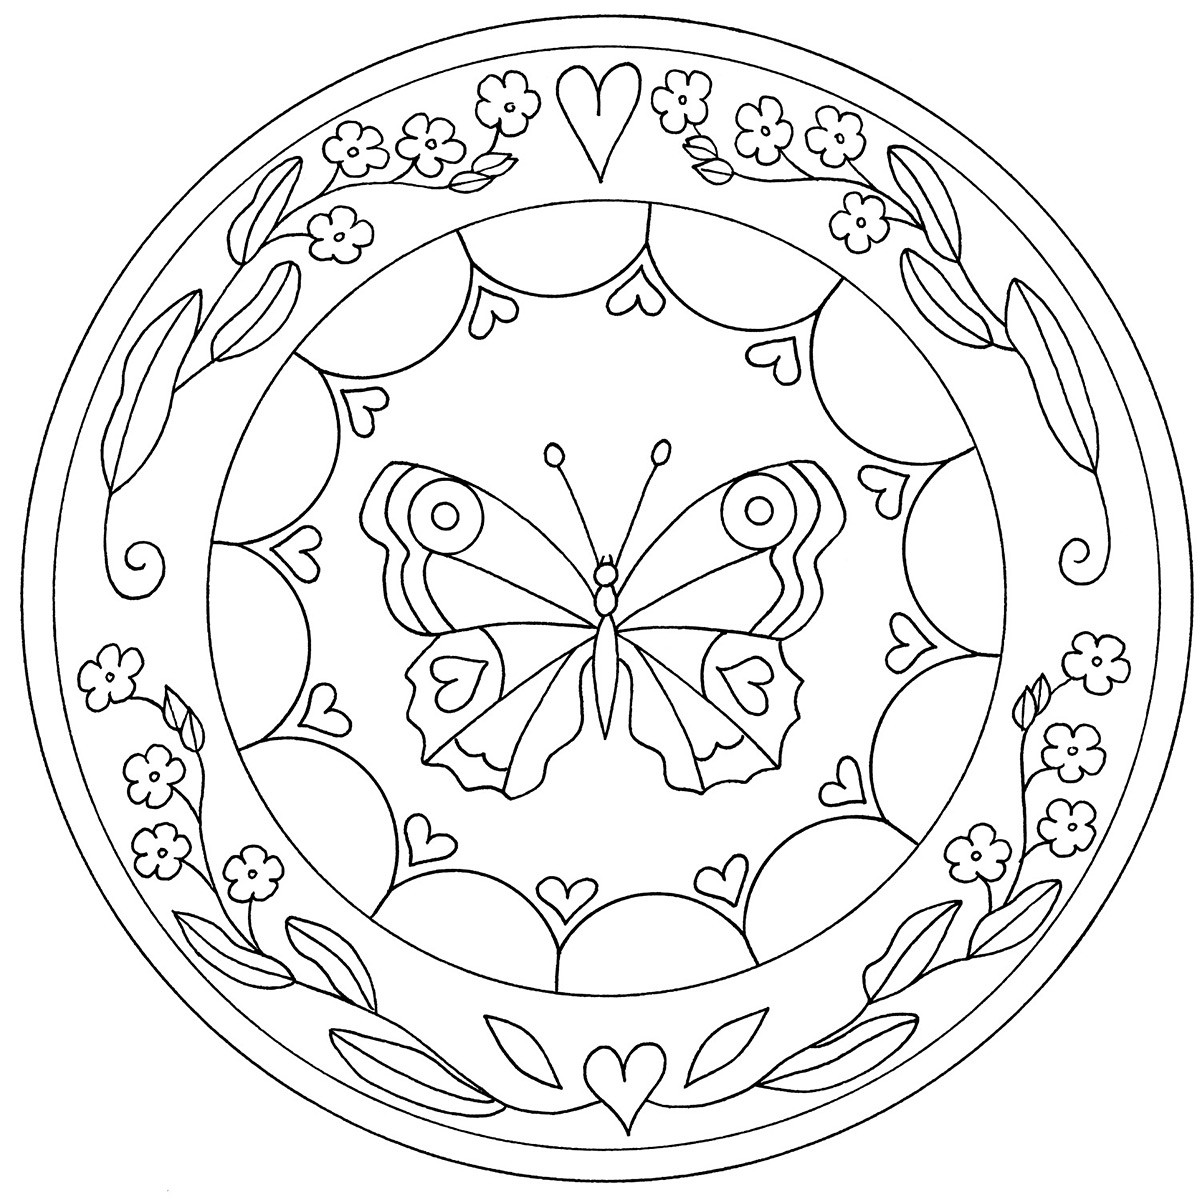 Summer mandala coloring pages - 17 Best Images About Mandales On Pinterest Coloring Dibujo And Mandala Coloring Pages